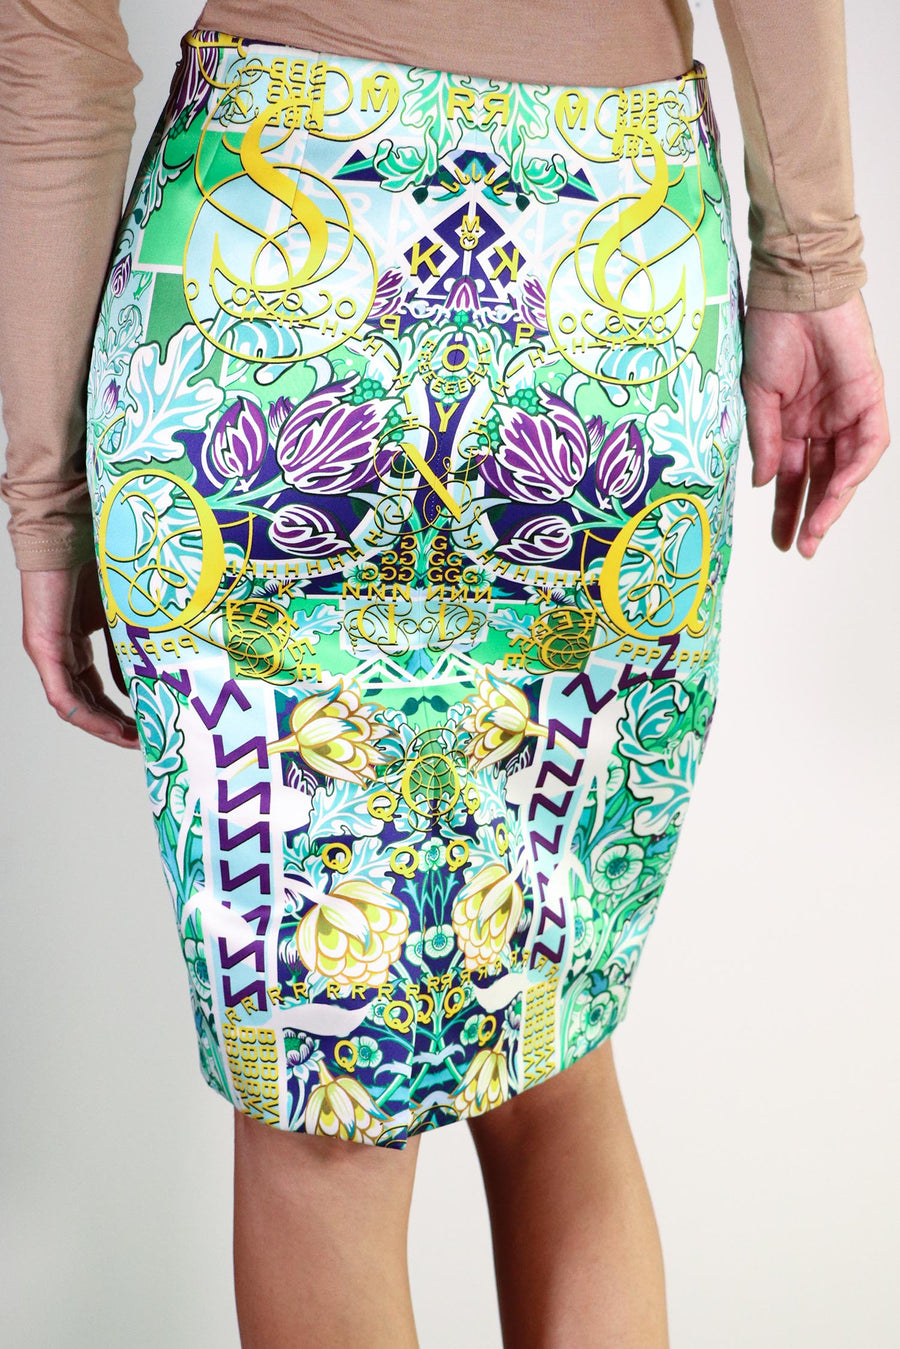 Mary Katrantzou - Digital Print Skirt - 6